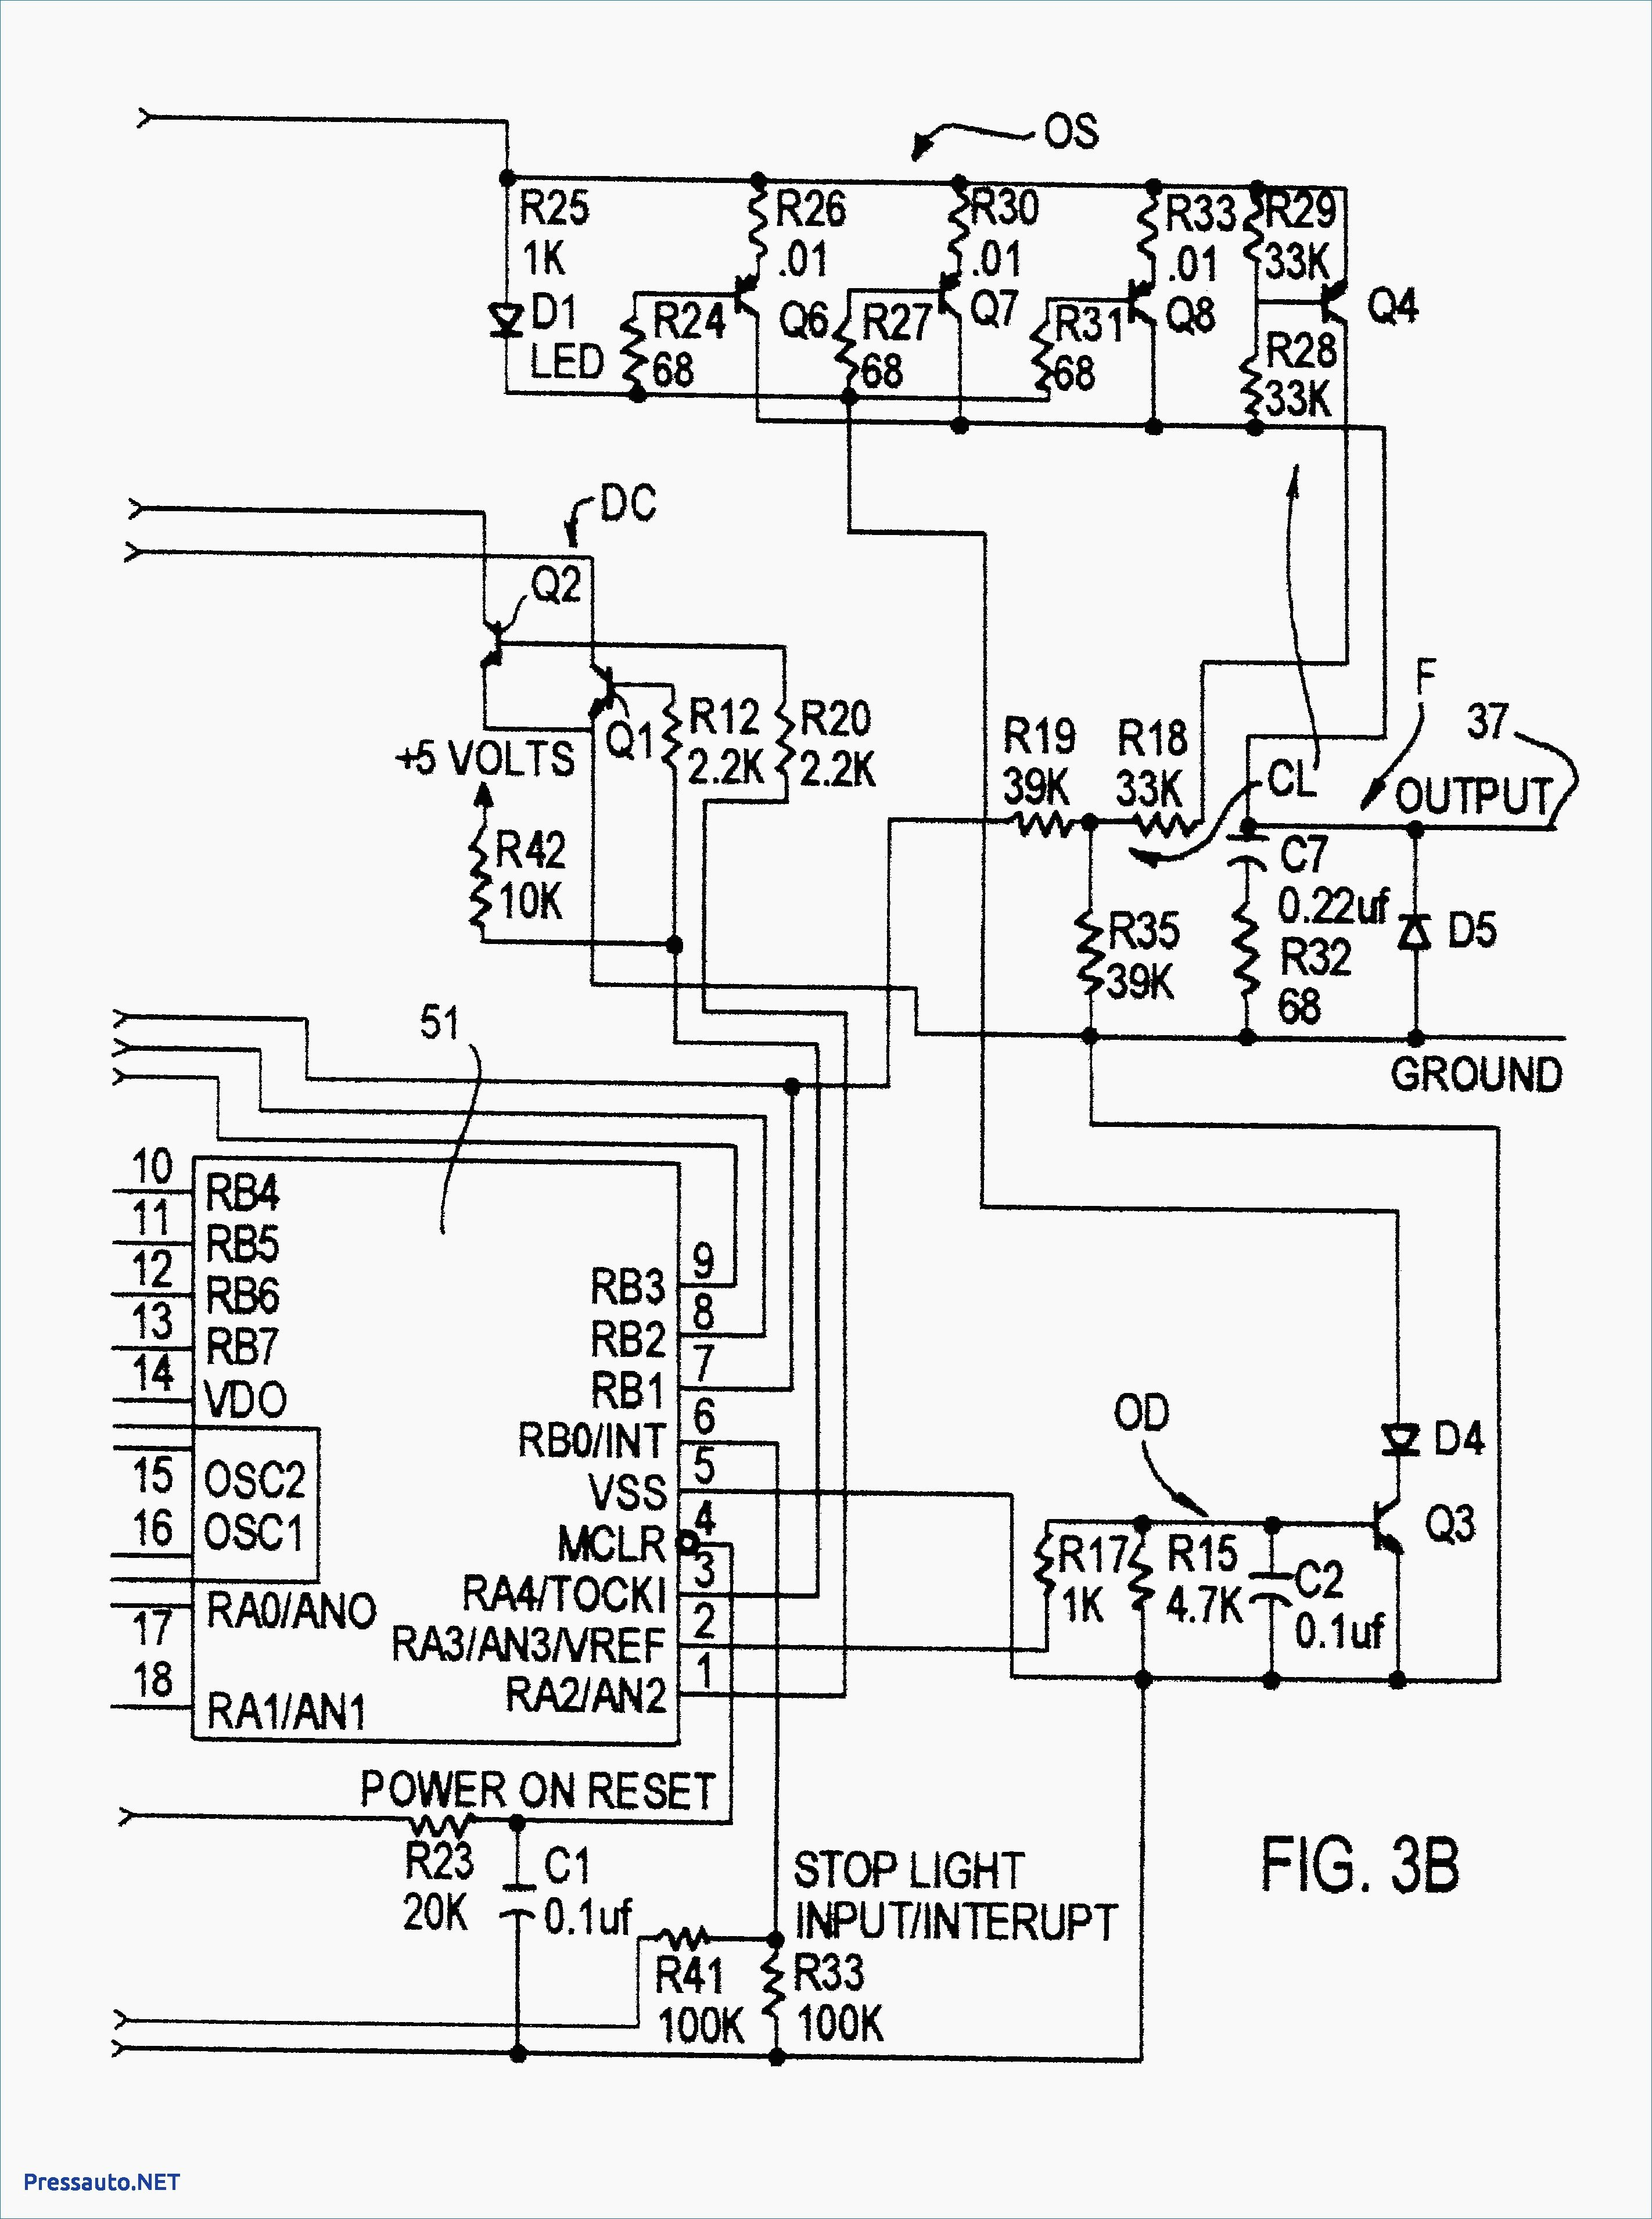 Usb 2 0 Male To Wiring Diagram Female Pinout Cable Pin Schematics Rs485 Image On